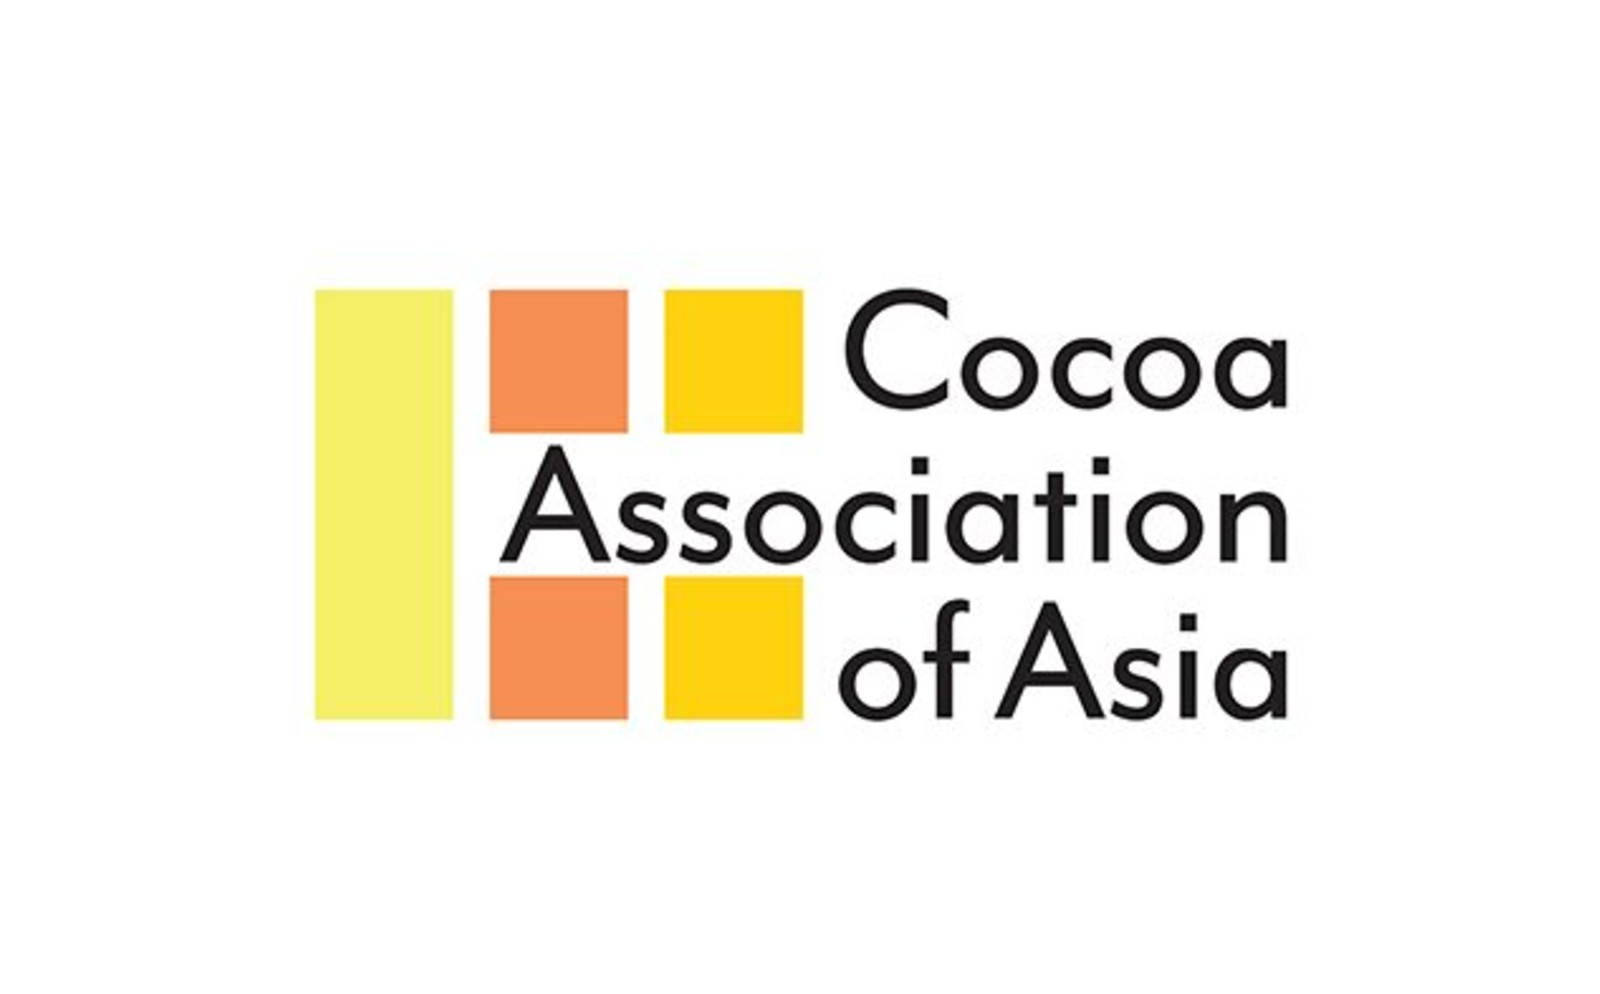 COCOA ASSOCIATION OF ASIA APPOINTS NEW SUB-COMMITTEES